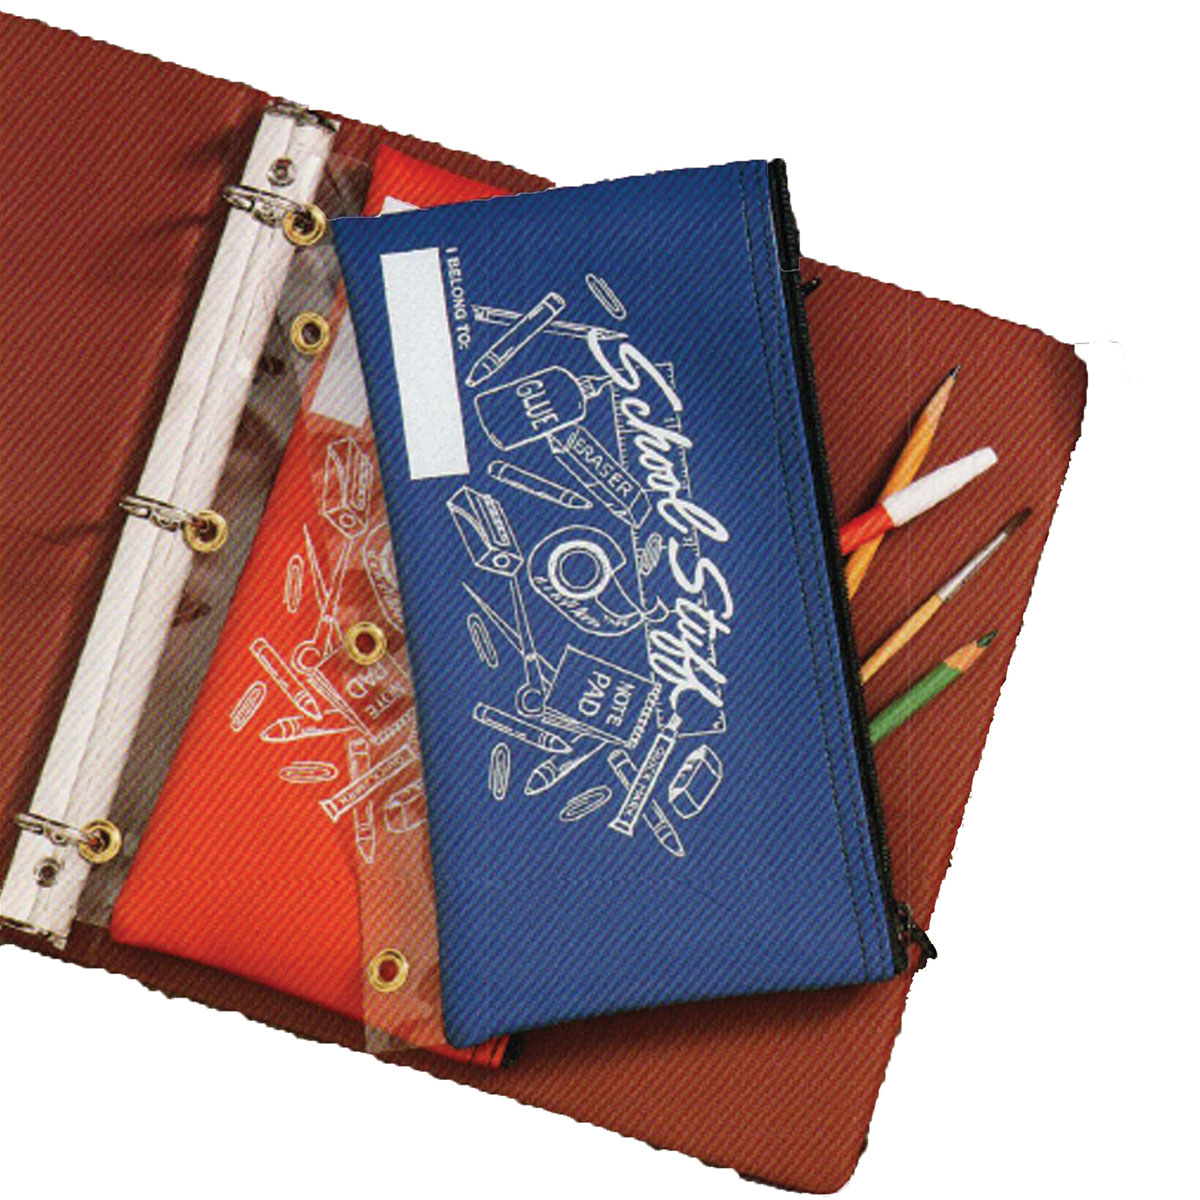 3-Ring-Binder-Pencil-Bag